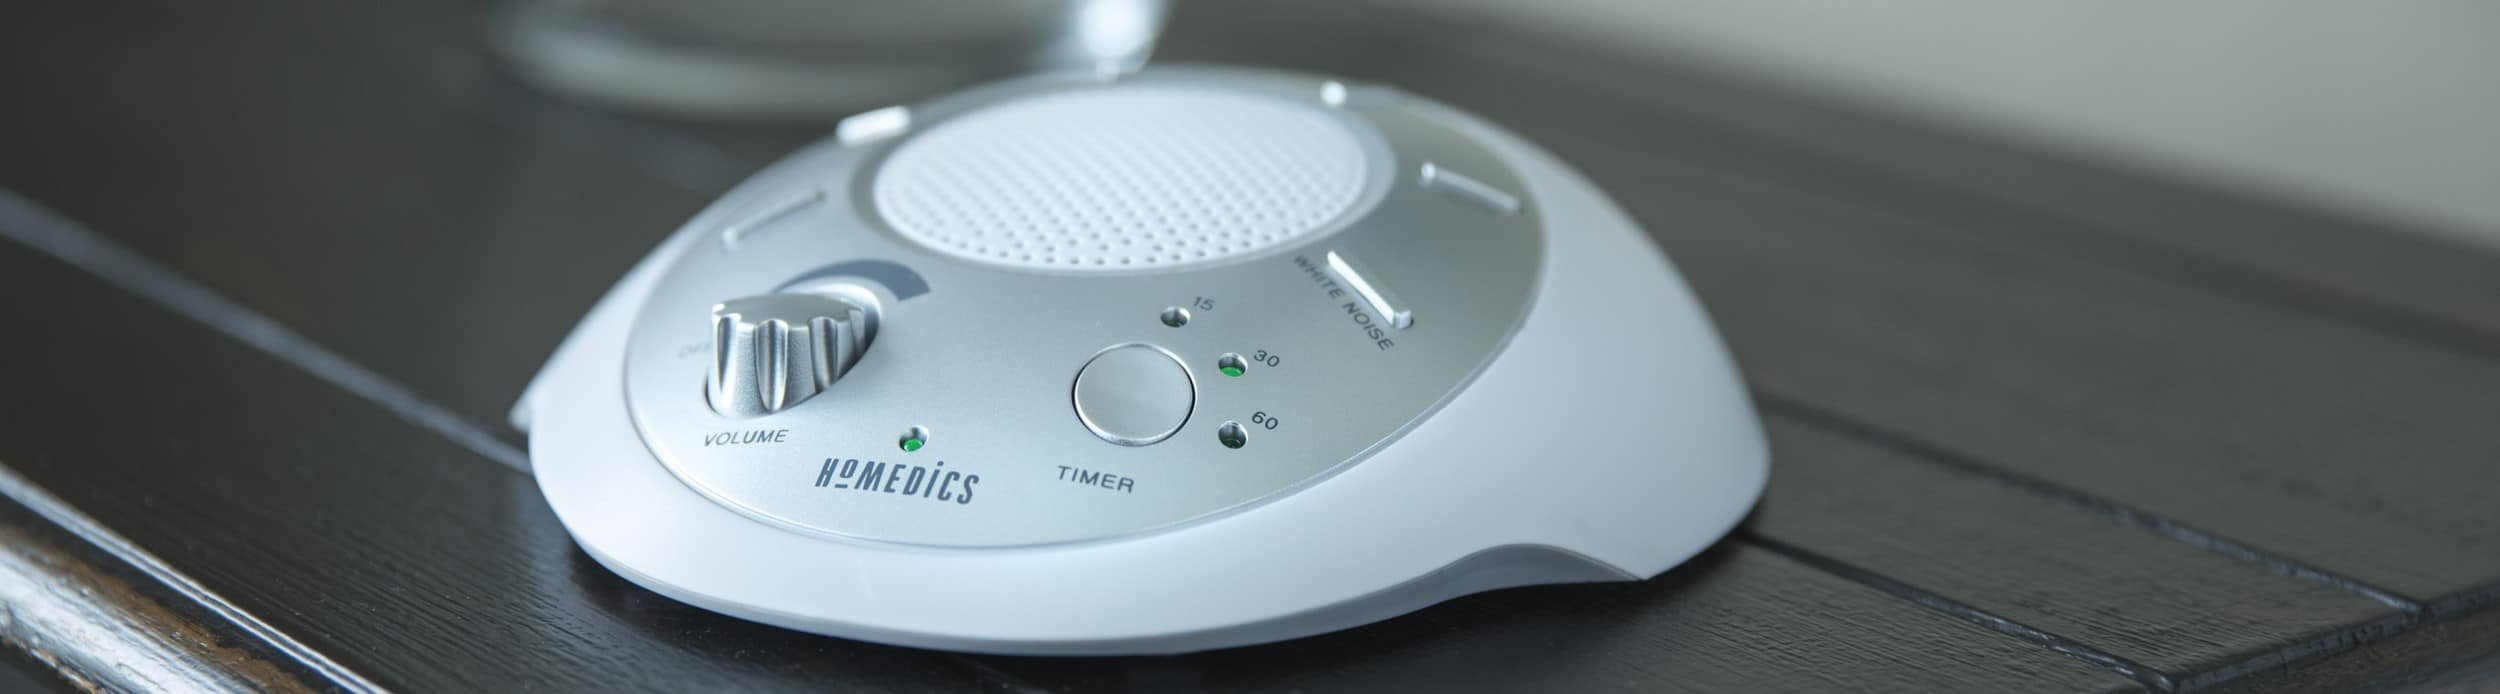 Best White Noise Machines Reviewed in Detail